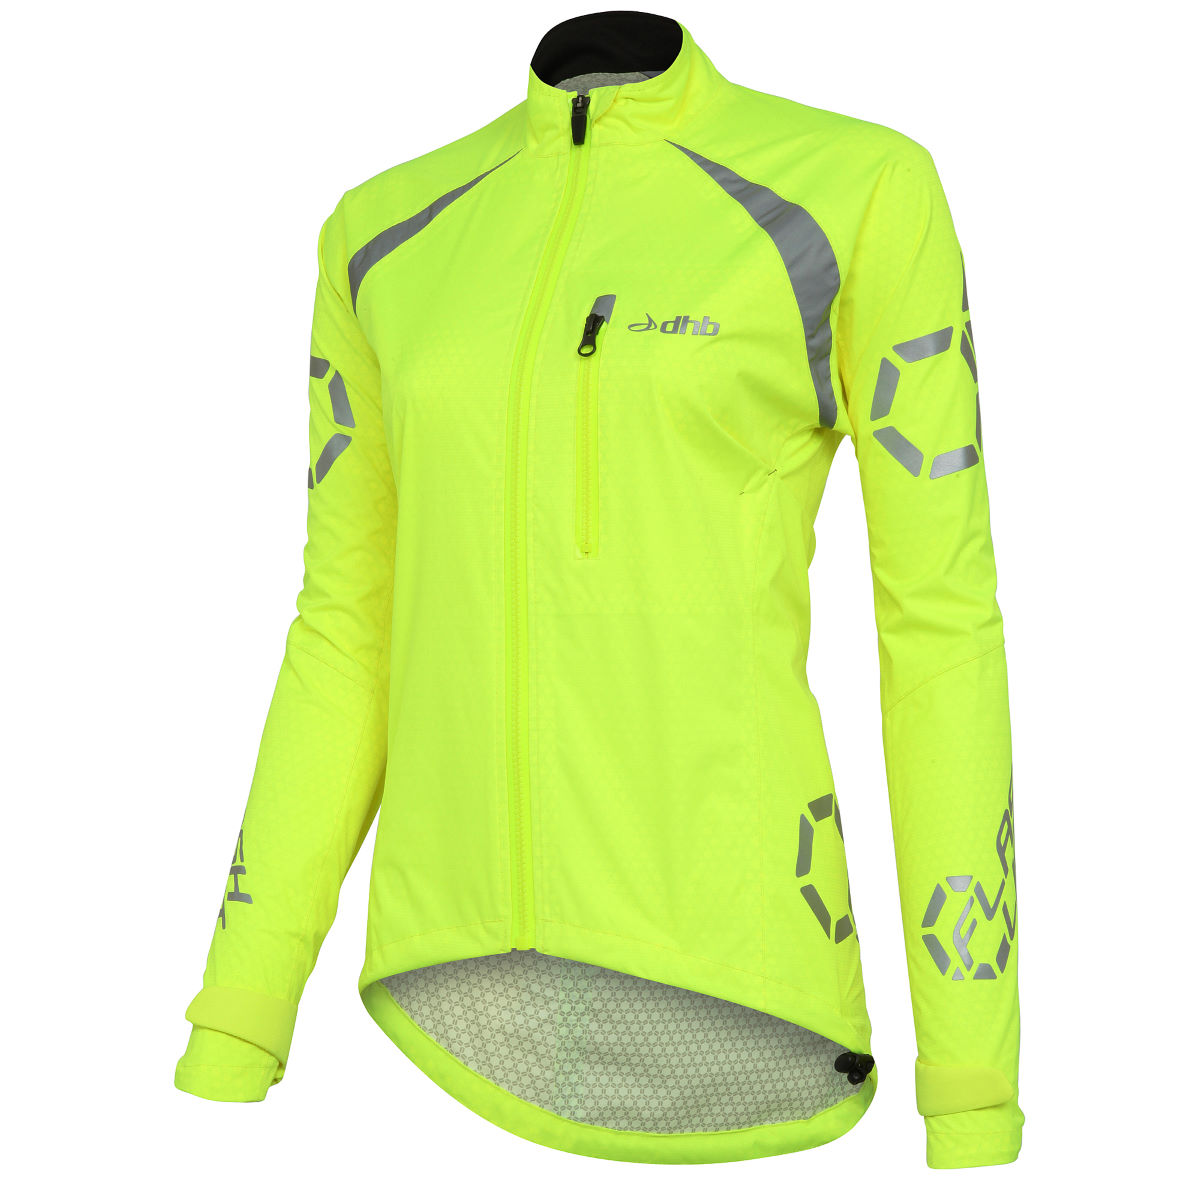 Veste Femme dhb Flashlight (imperméable) - 16 UK Fluro Yellow Vestes